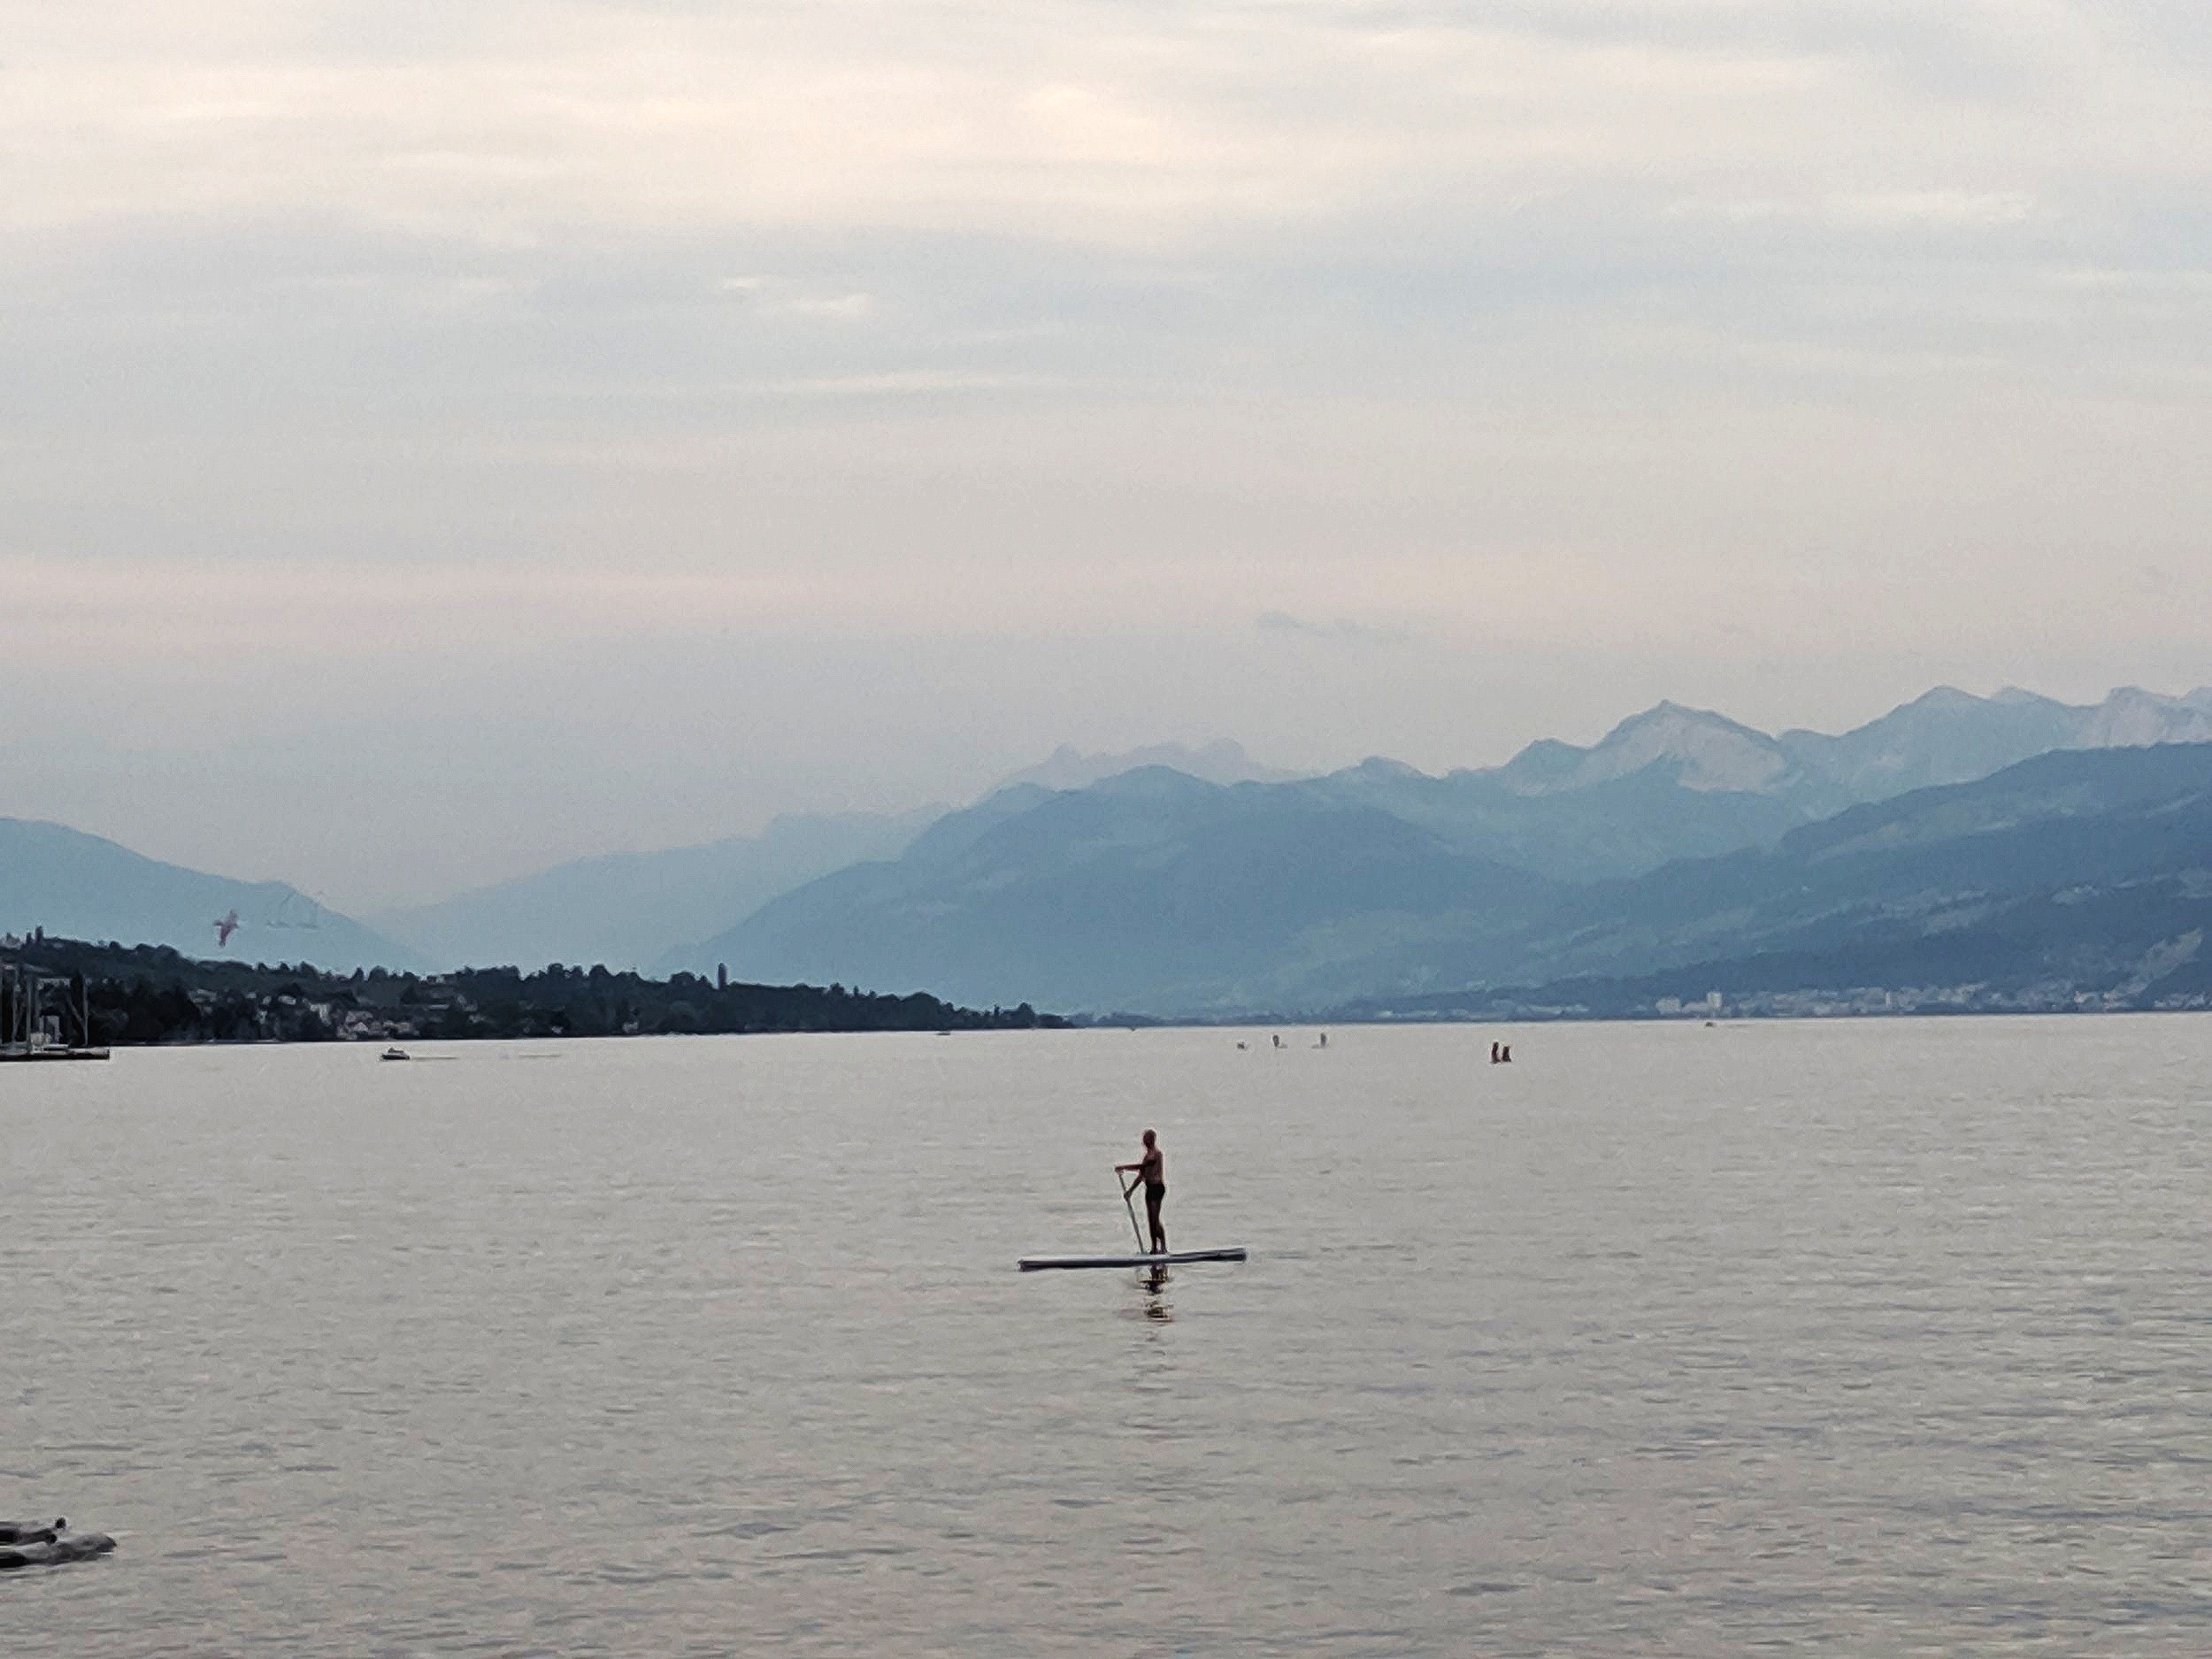 A paddle boarder makes his way across Lake Zurich at dusk — several boys were swimming by the shore. Can you spot snow capped peaks in the distance?